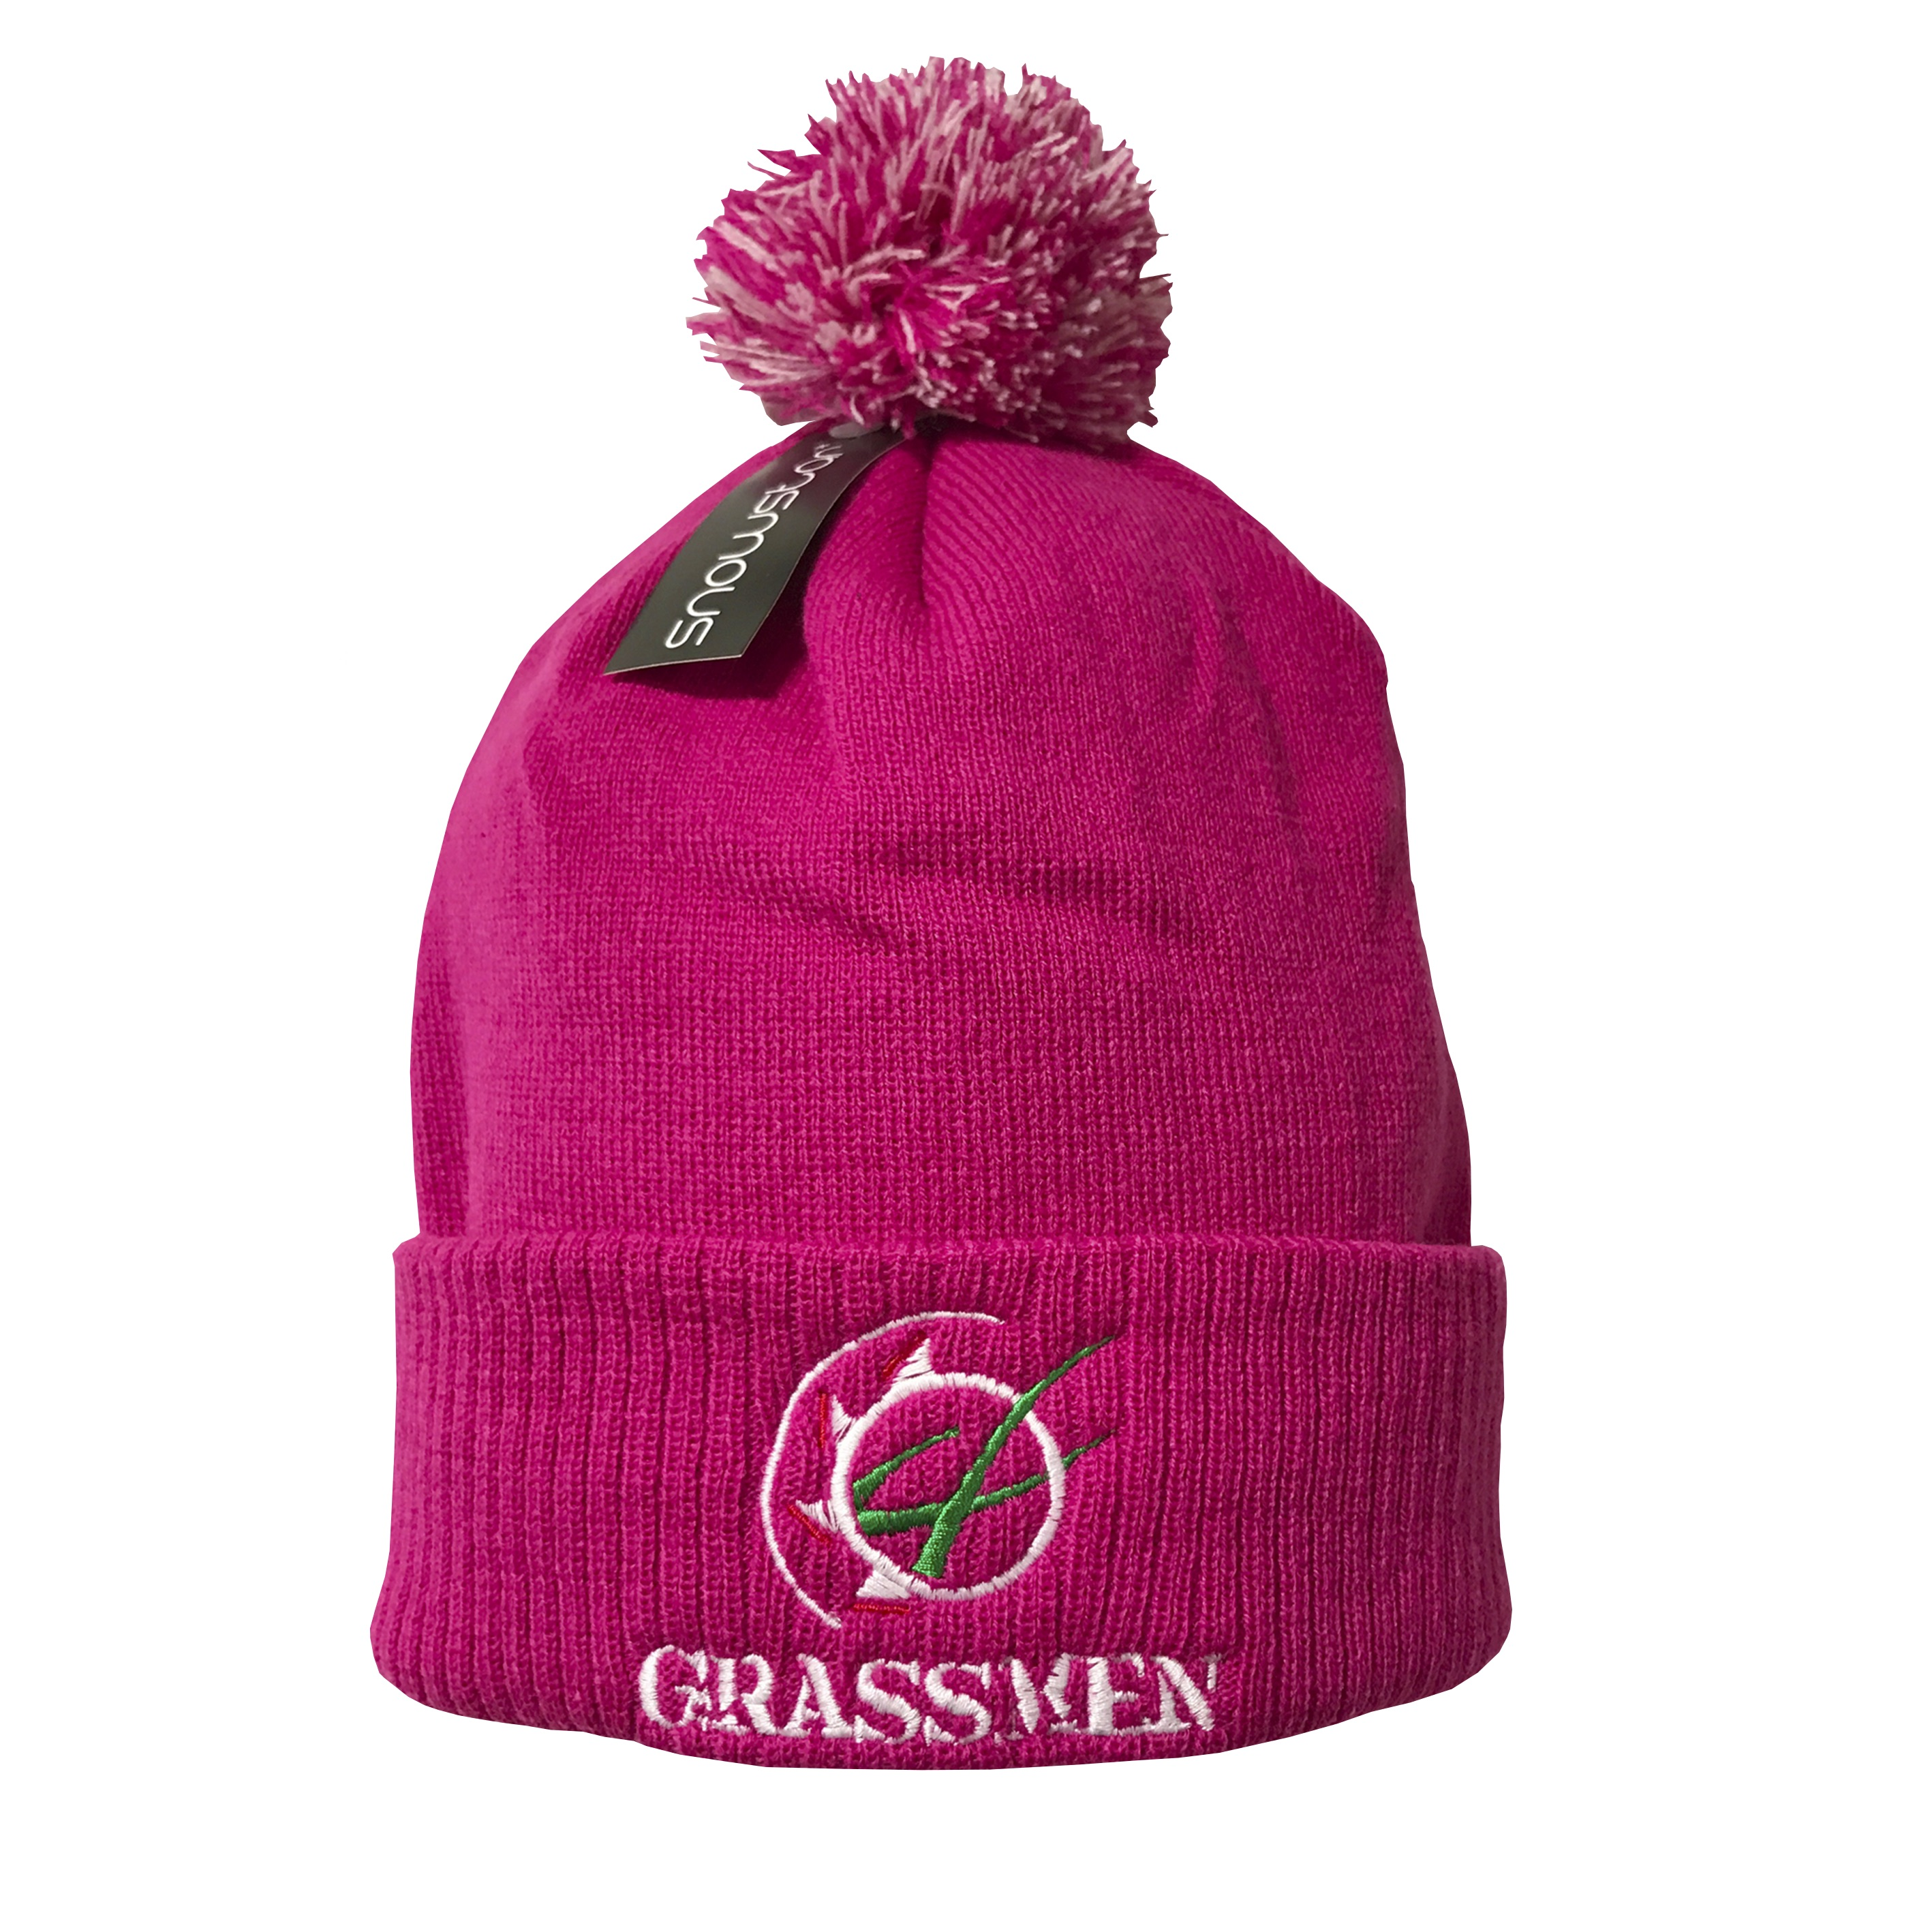 86a33846ee2f2 Double layer knitted bobble hat with two tone pom pom